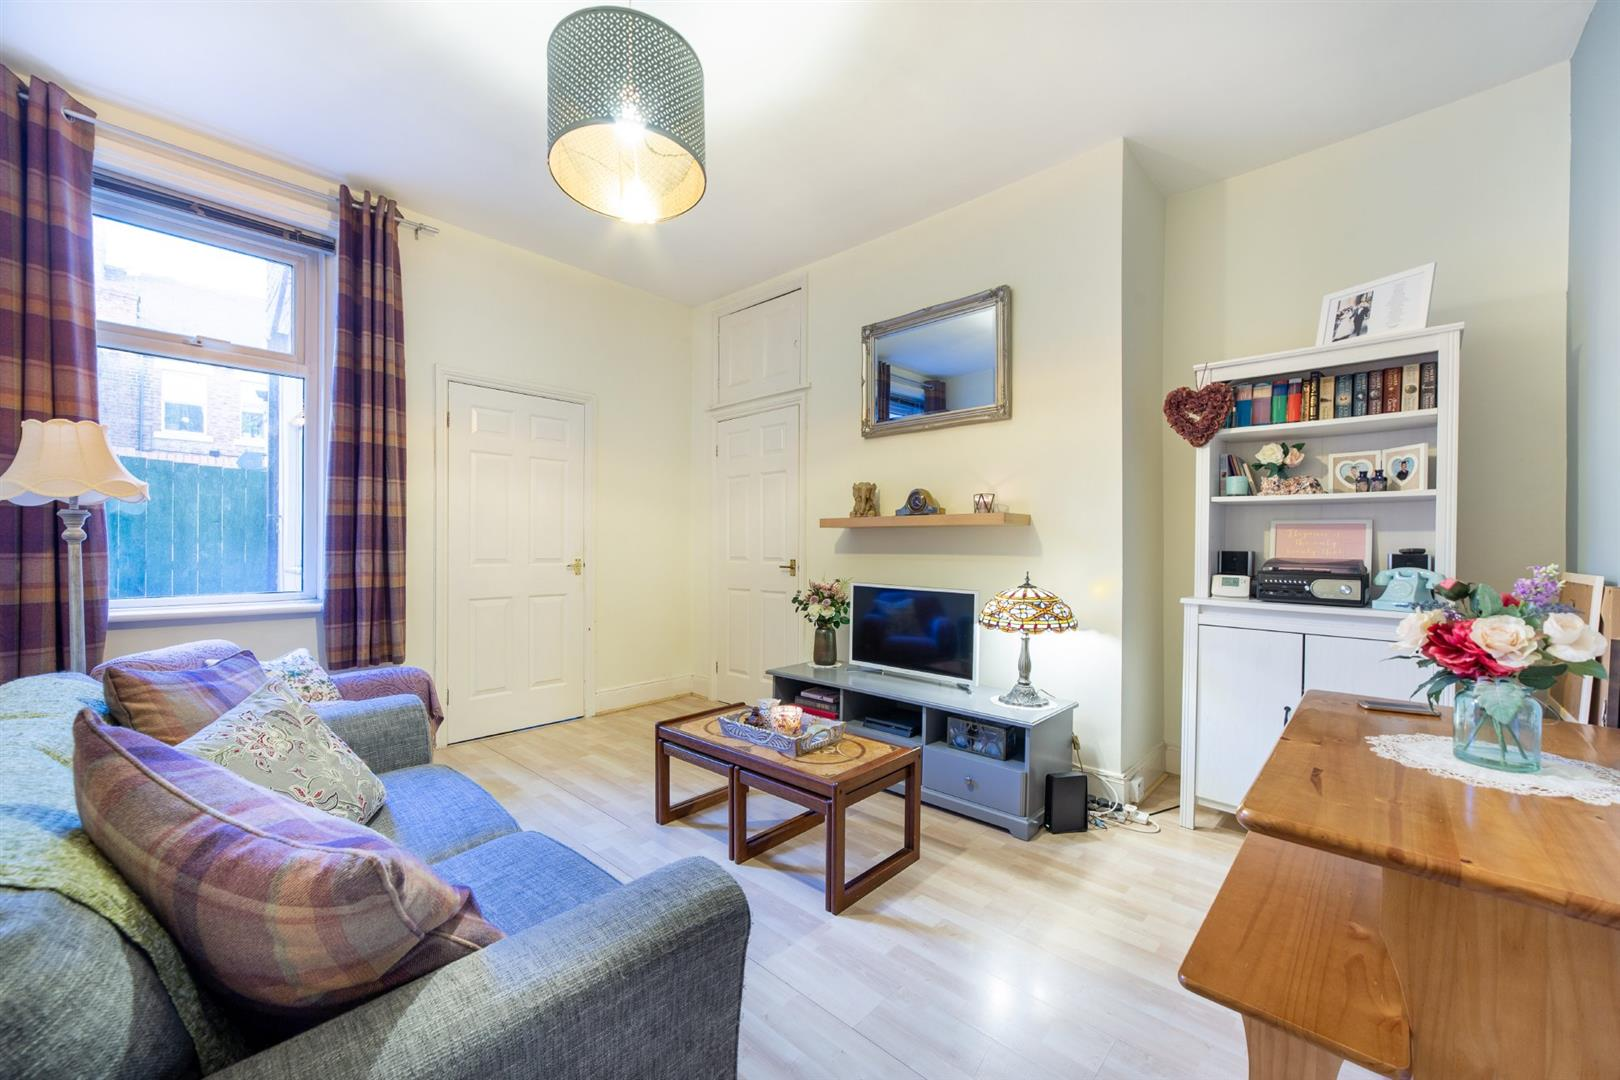 2 bed flat for sale in Newcastle Upon Tyne, NE6 5XY - Property Image 1